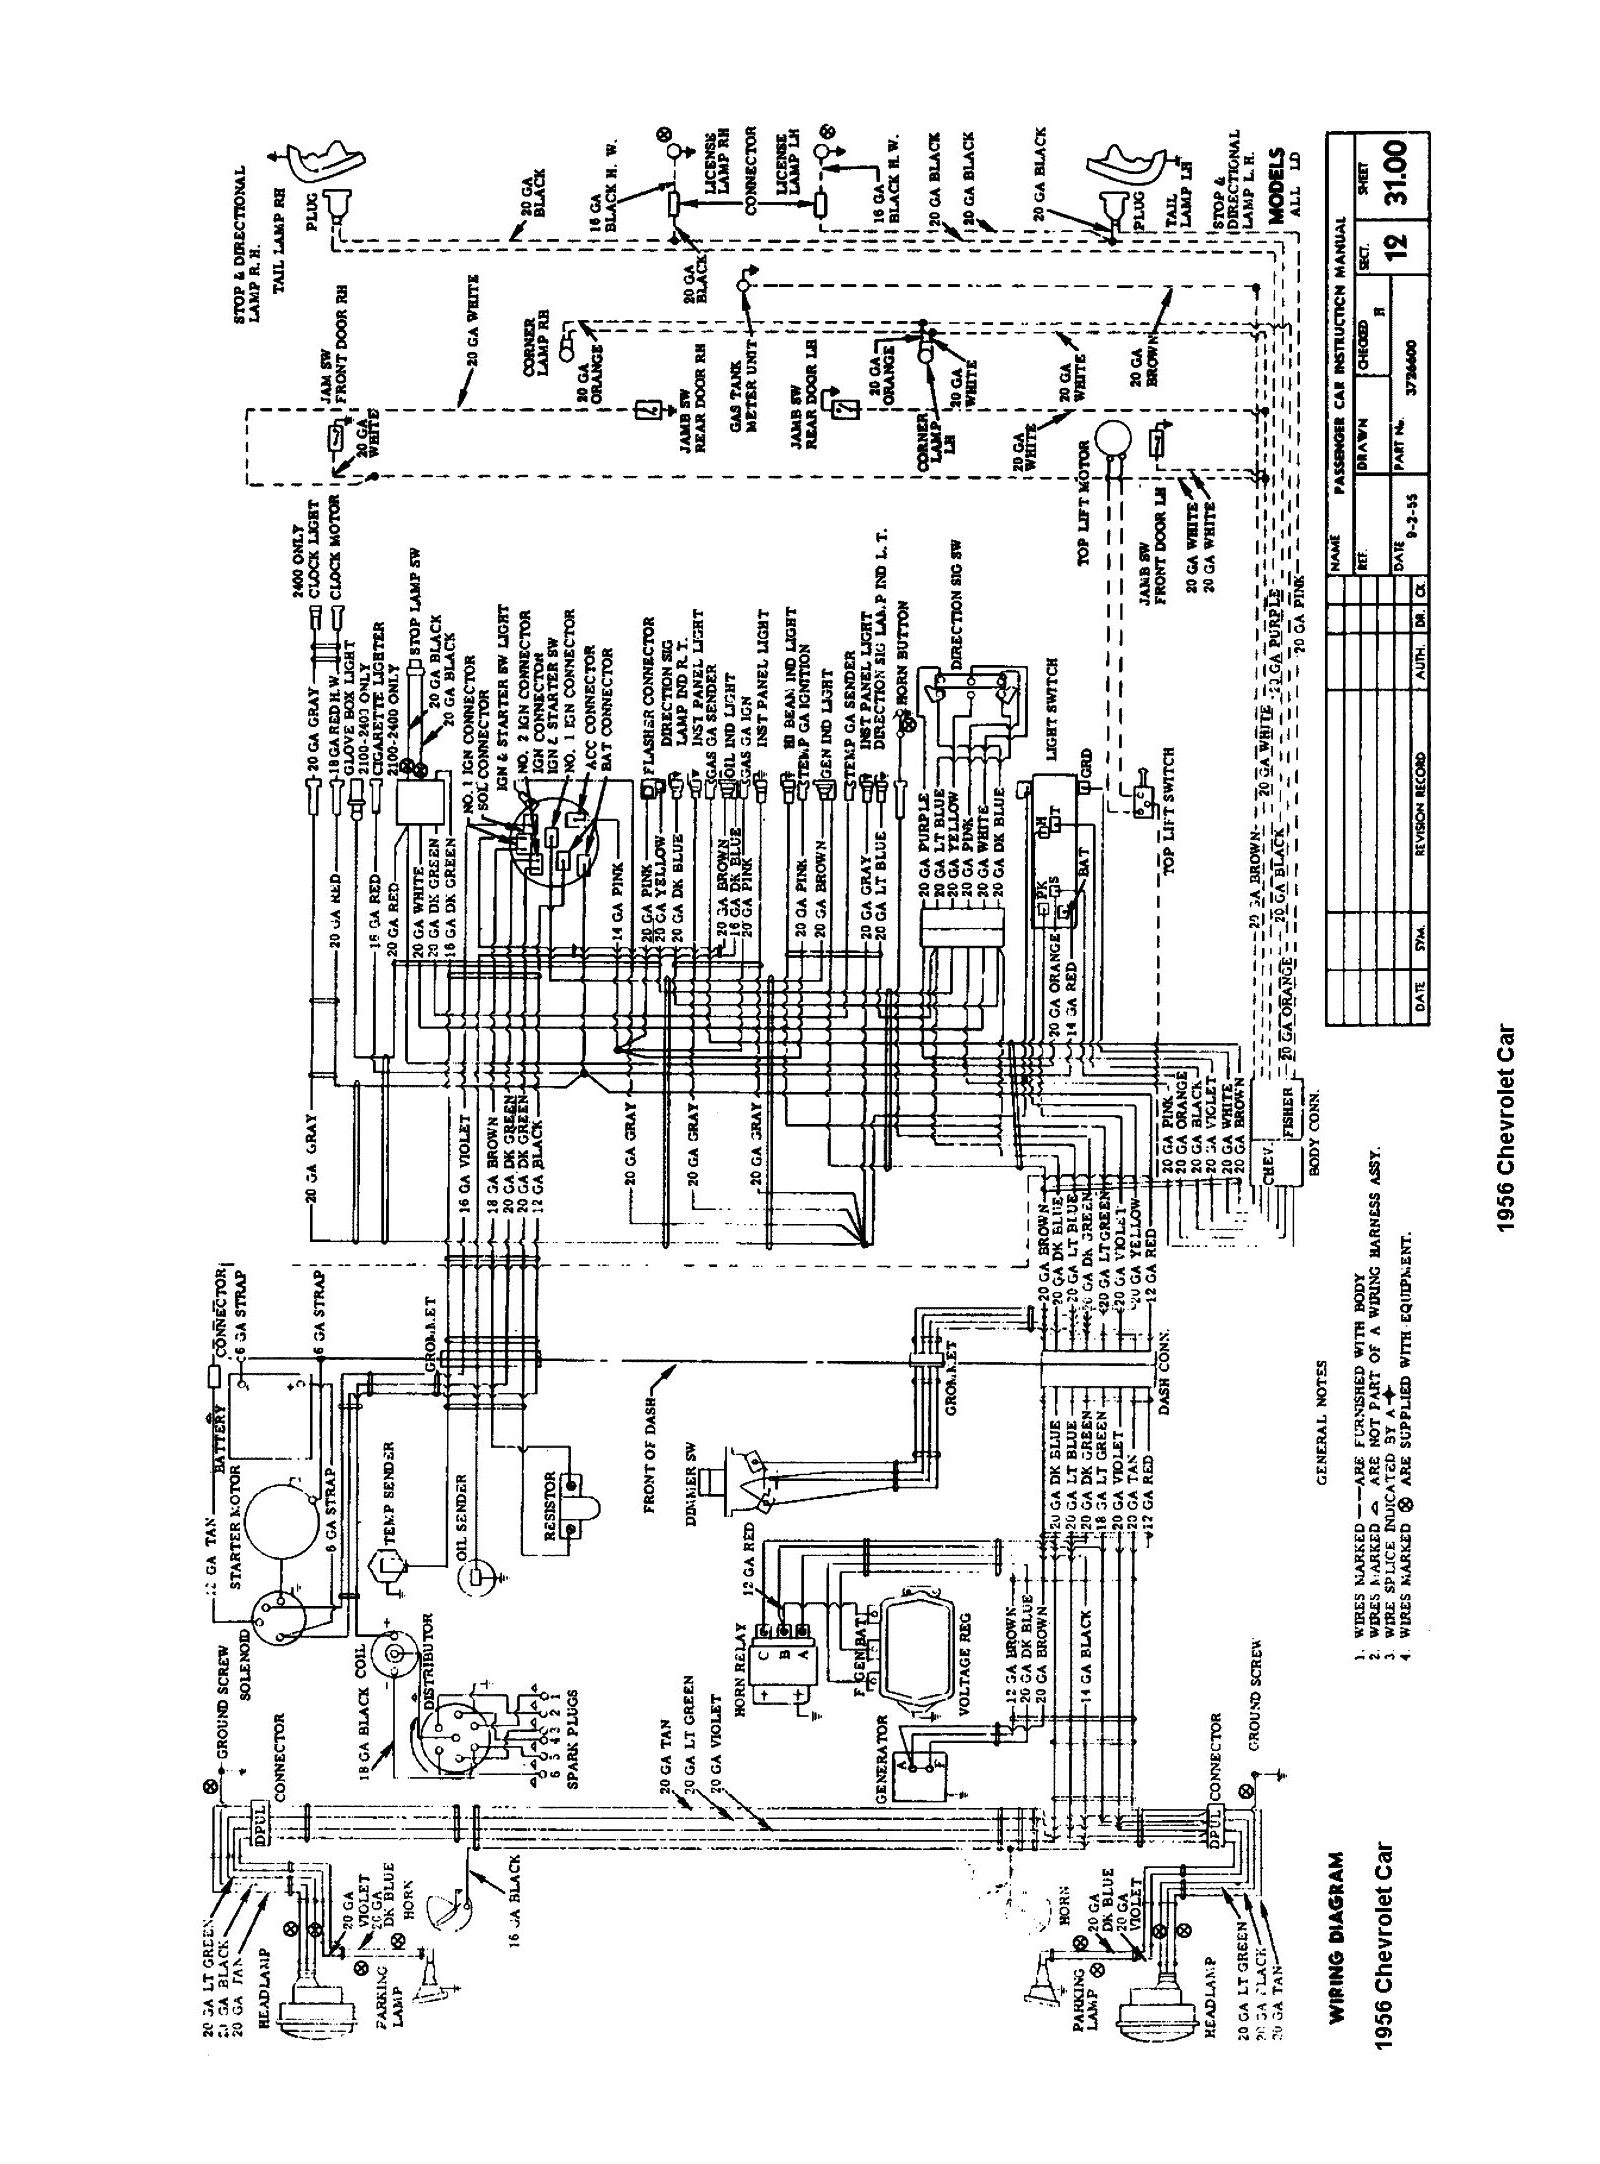 1958 chevy bel air wiring diagram  1958  free engine image